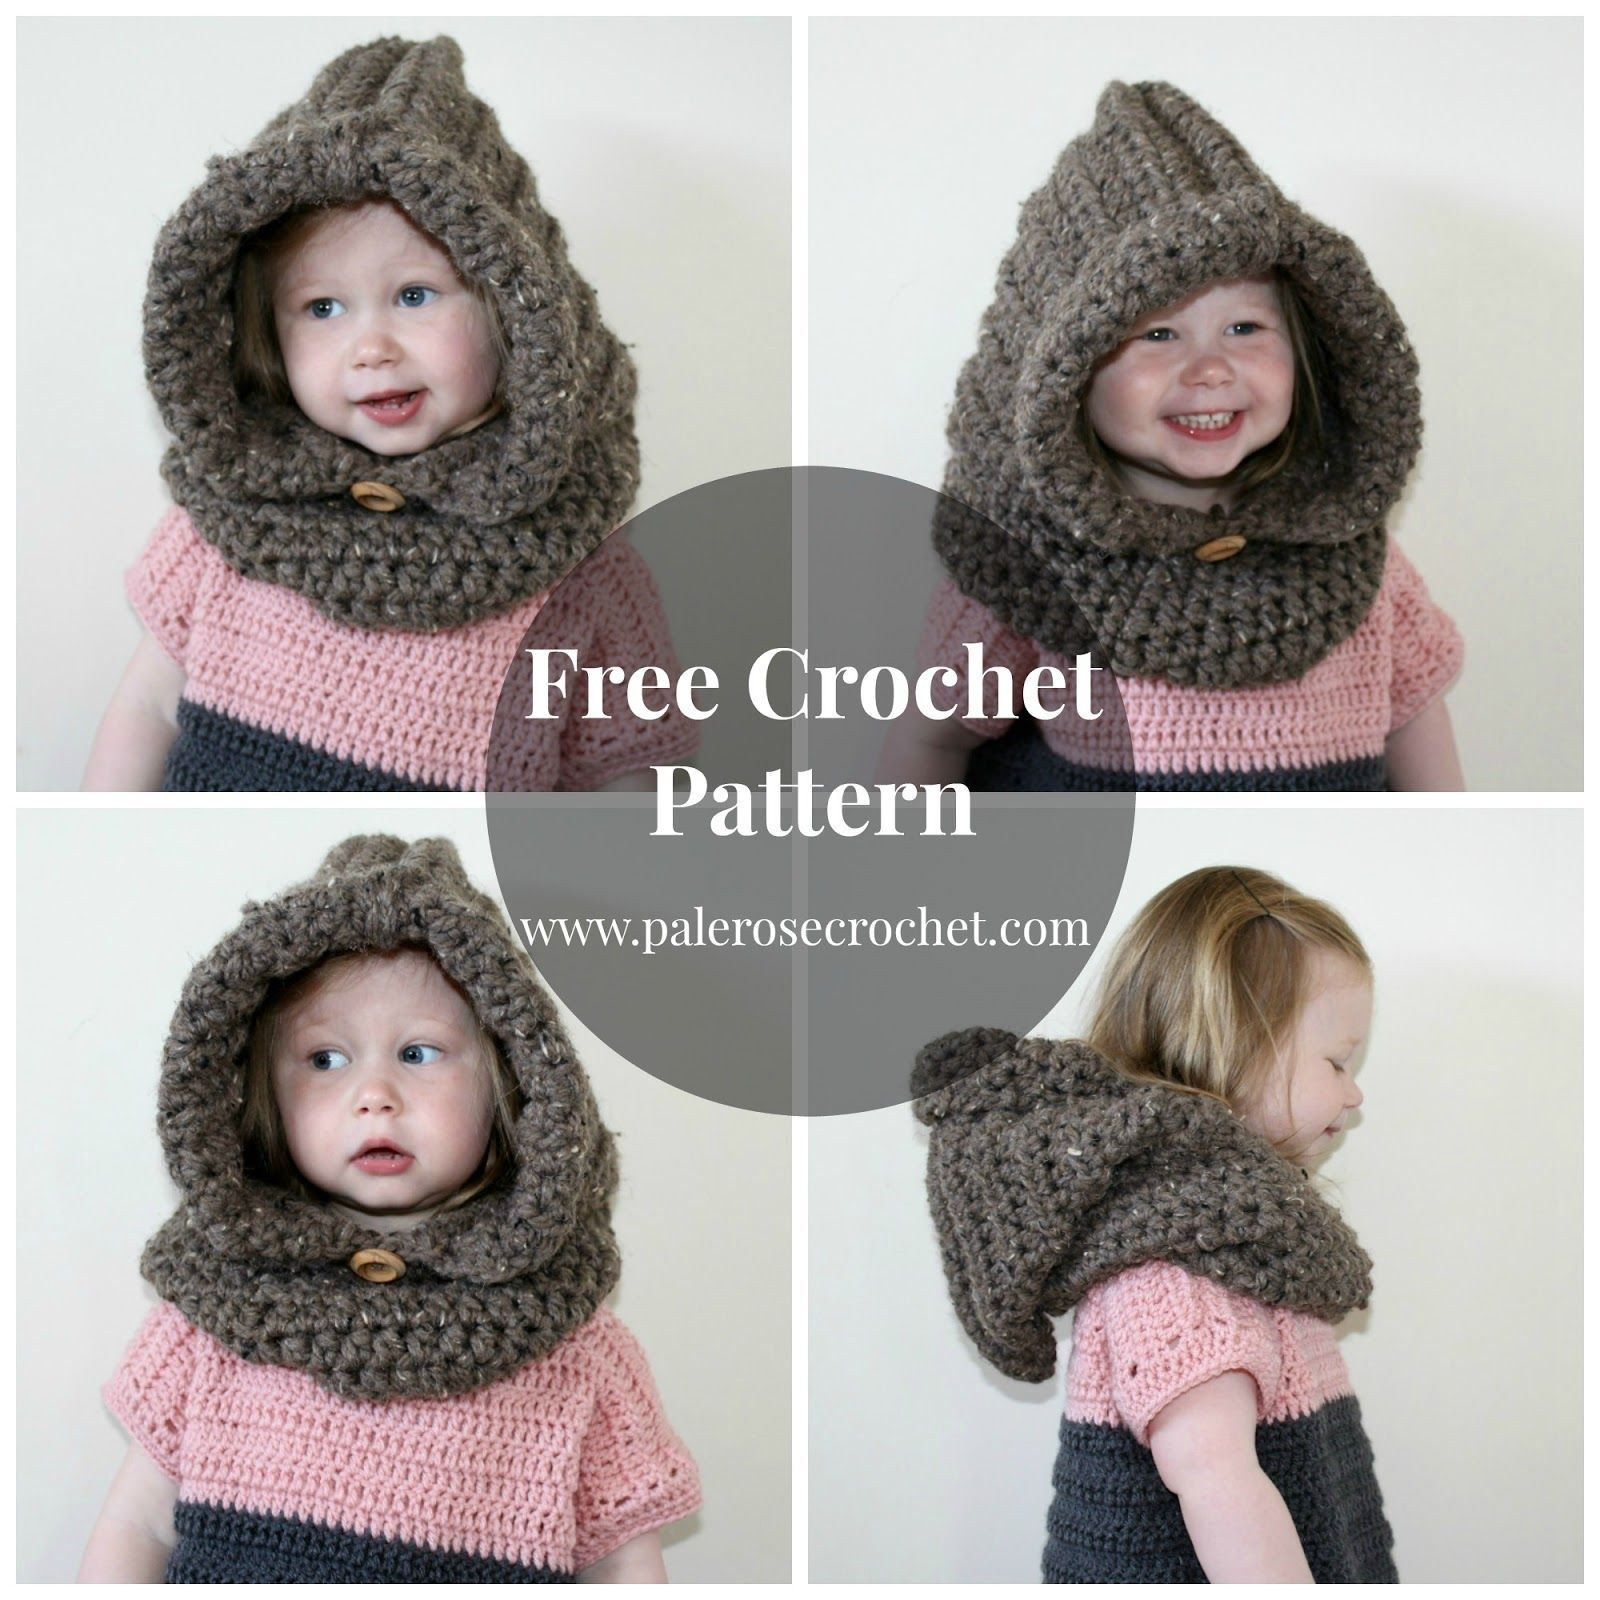 Pale rose crochet crochet toddler hood pattern crochet hats free crochet bankloansurffo Gallery